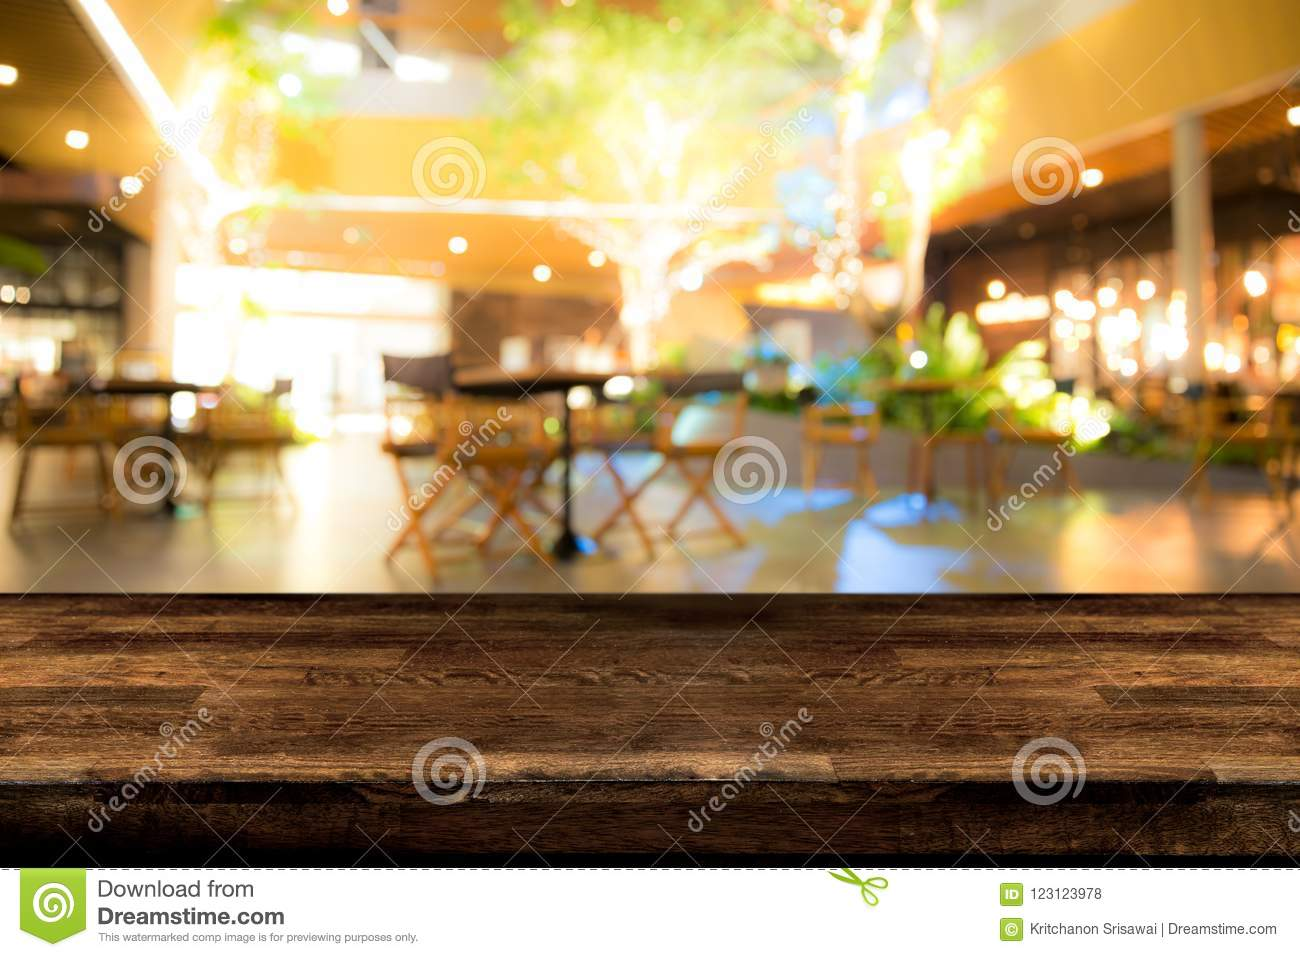 Real wood table with appetizer and light reflection on scene at